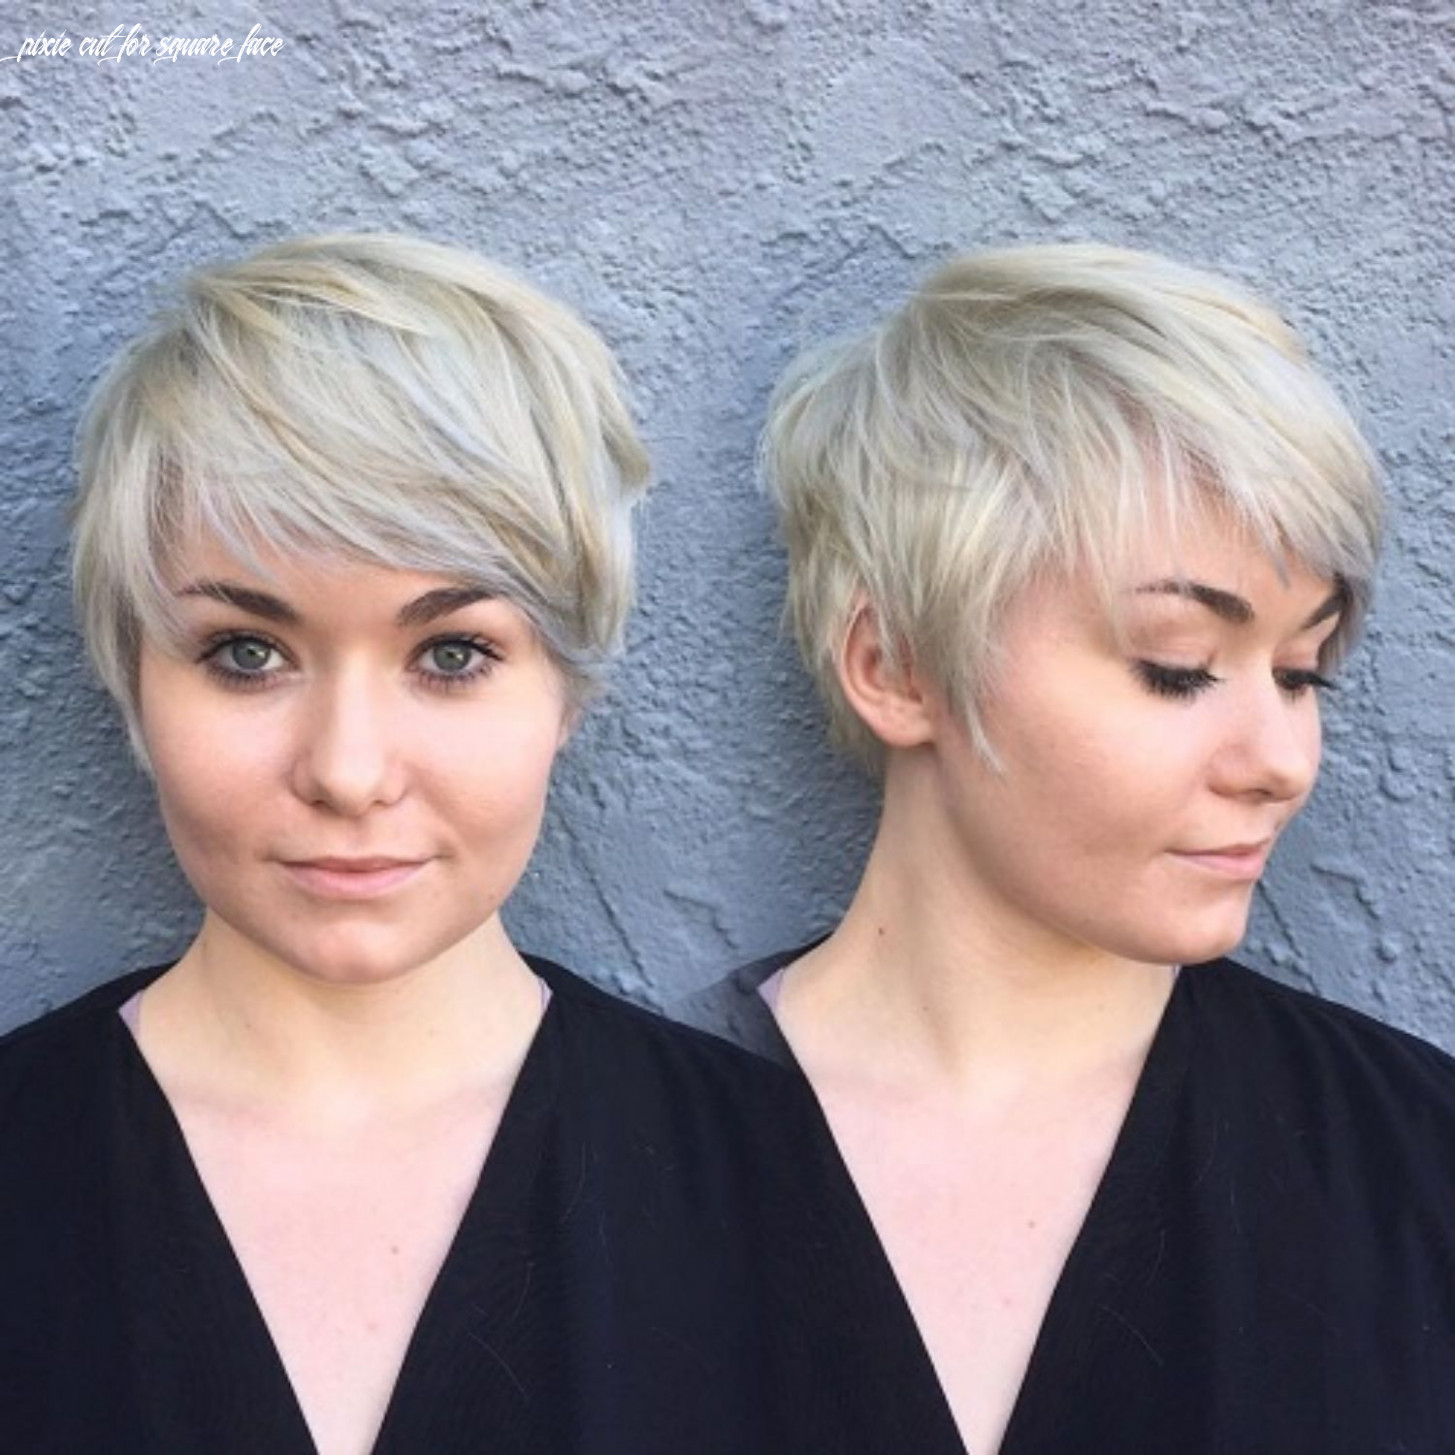 10 best hairstyles for square faces rounding the angles | square